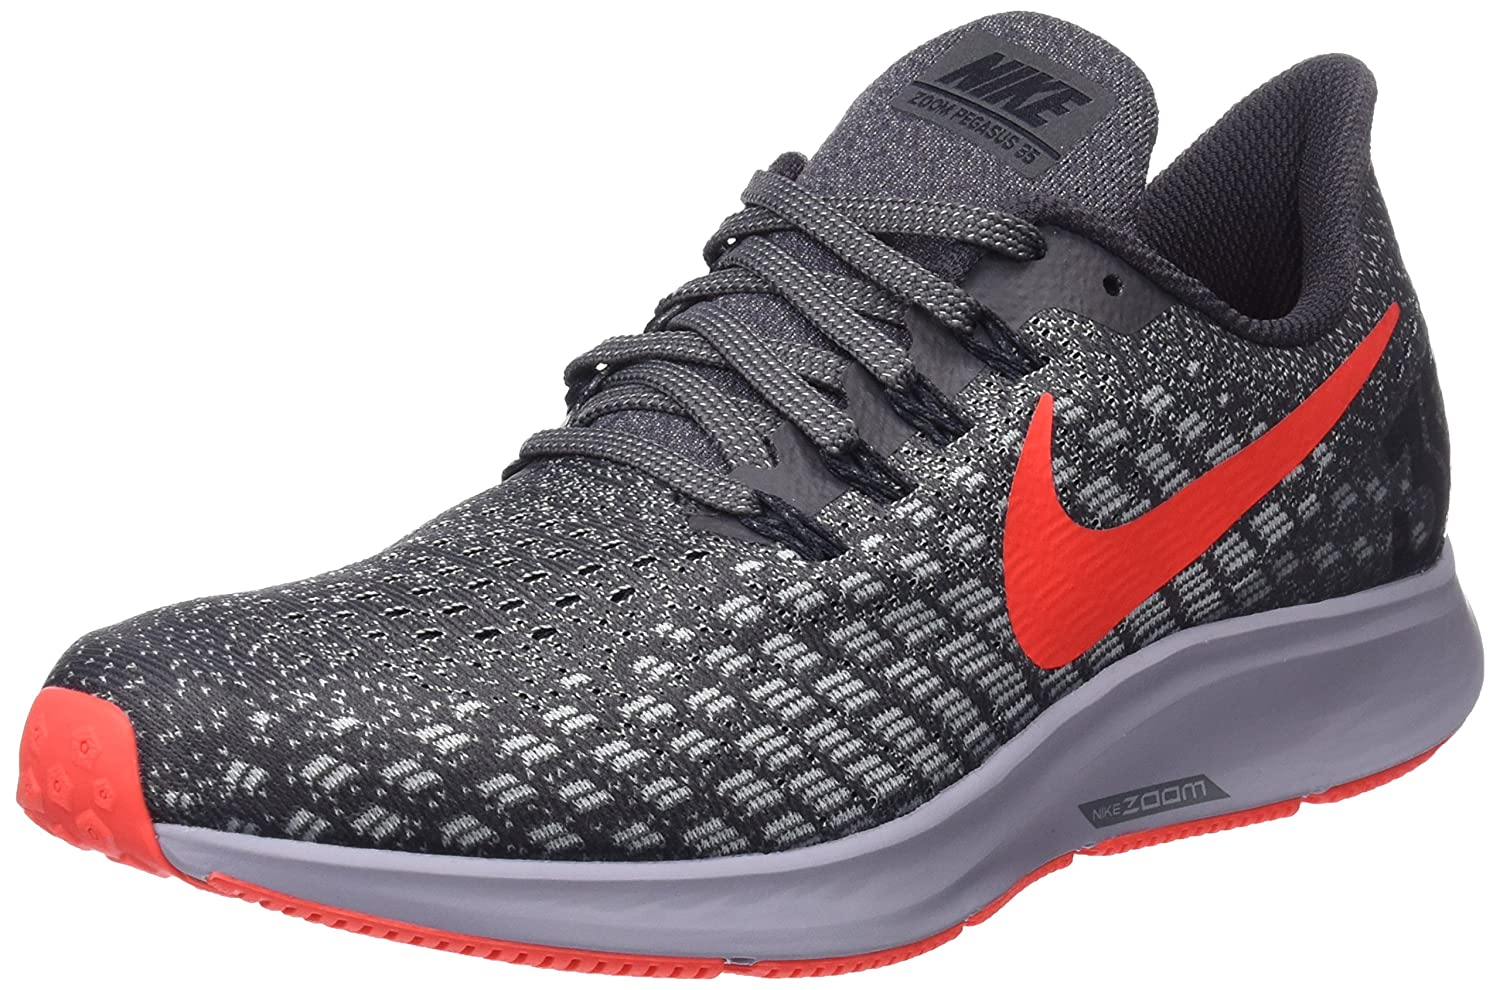 premium selection 7fe8a 183c5 Amazon.com | Nike Men's Air Zoom Pegasus 35 Running Shoe ...